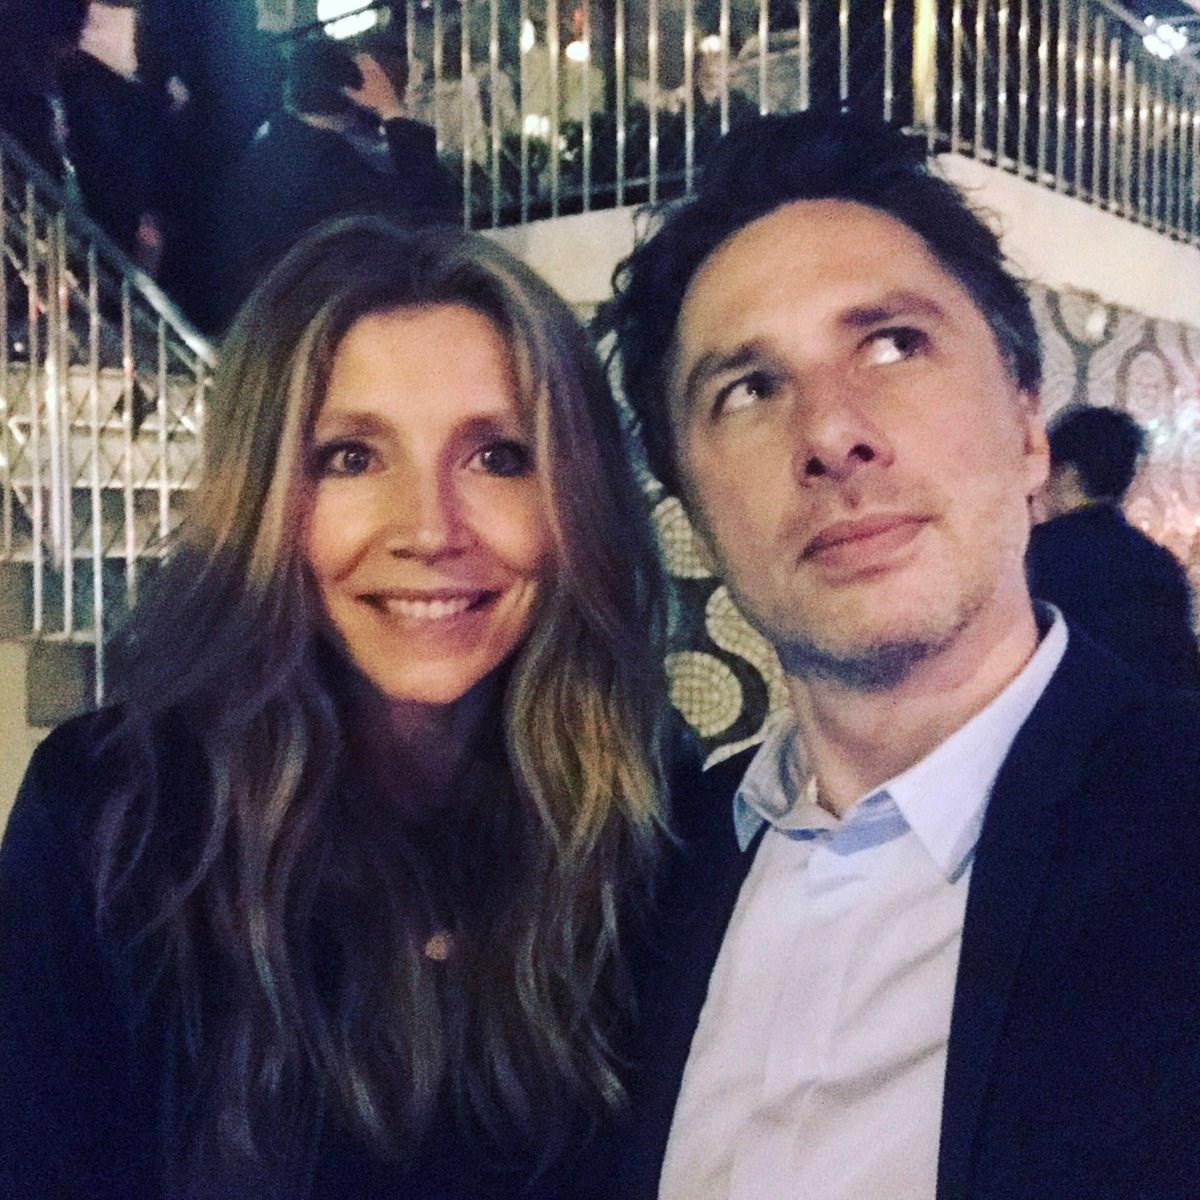 """**Scrubs**  J.D. and Elliot Reid (aka Zach Braff and Sarah Chalke) recently got together for a catch up. Zach captioned this pic on Twitter as """"And that's when I realized..."""" - realised what Zach?! Realised that a *Scrubs* reunion should definitely happen? Because if so, WE NEED TO KNOW!"""